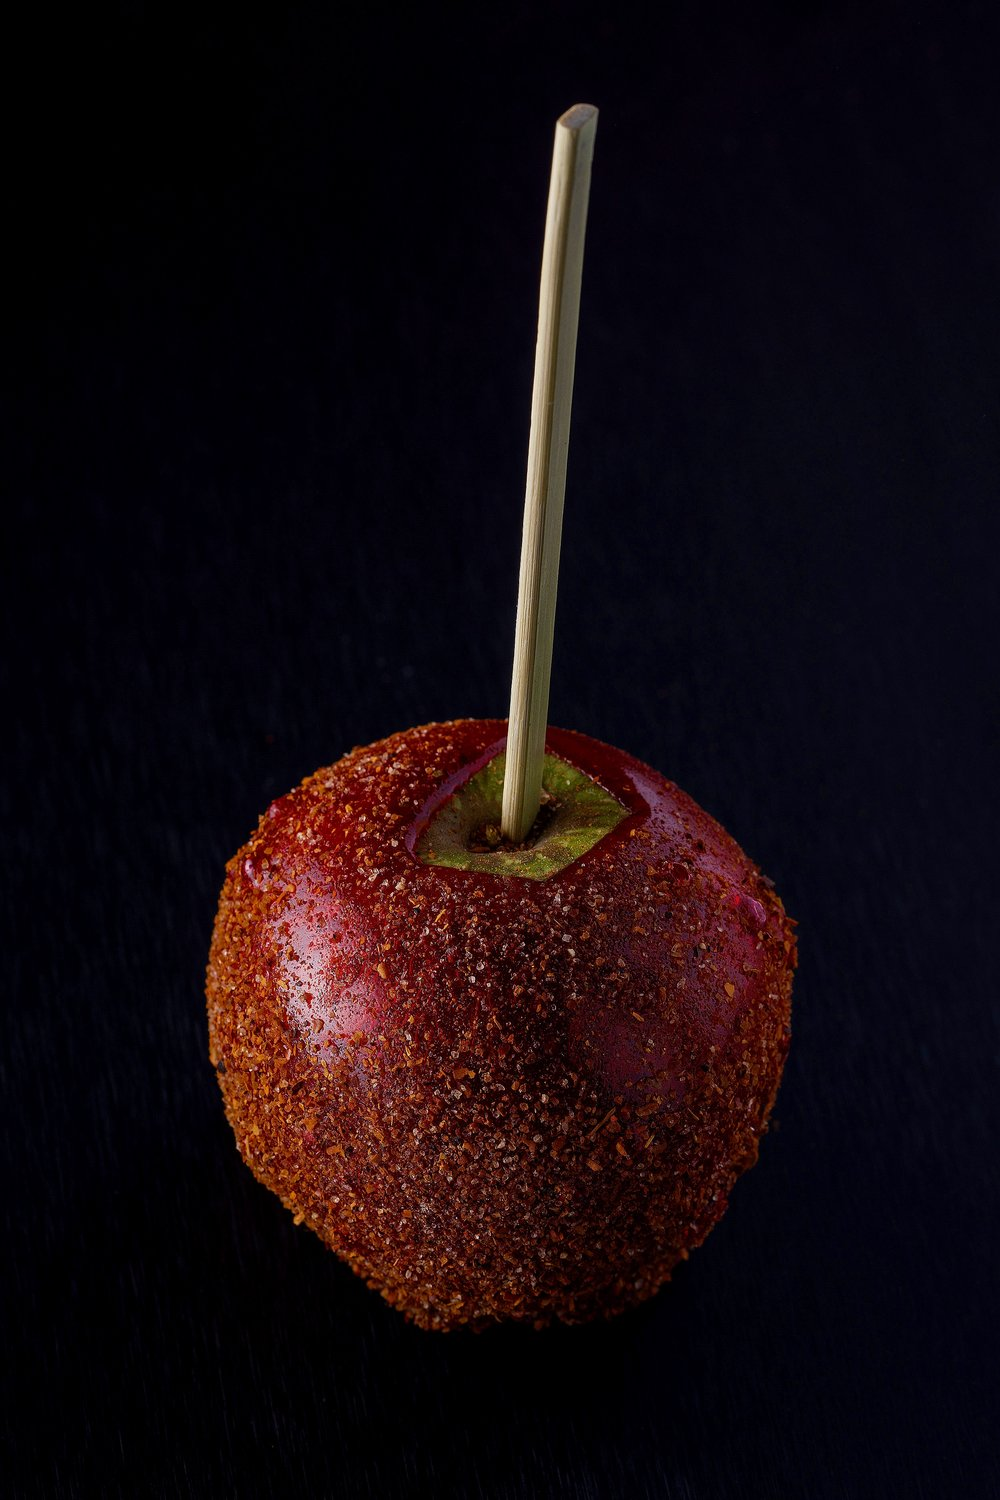 Spicy, candied Granny Smith apple